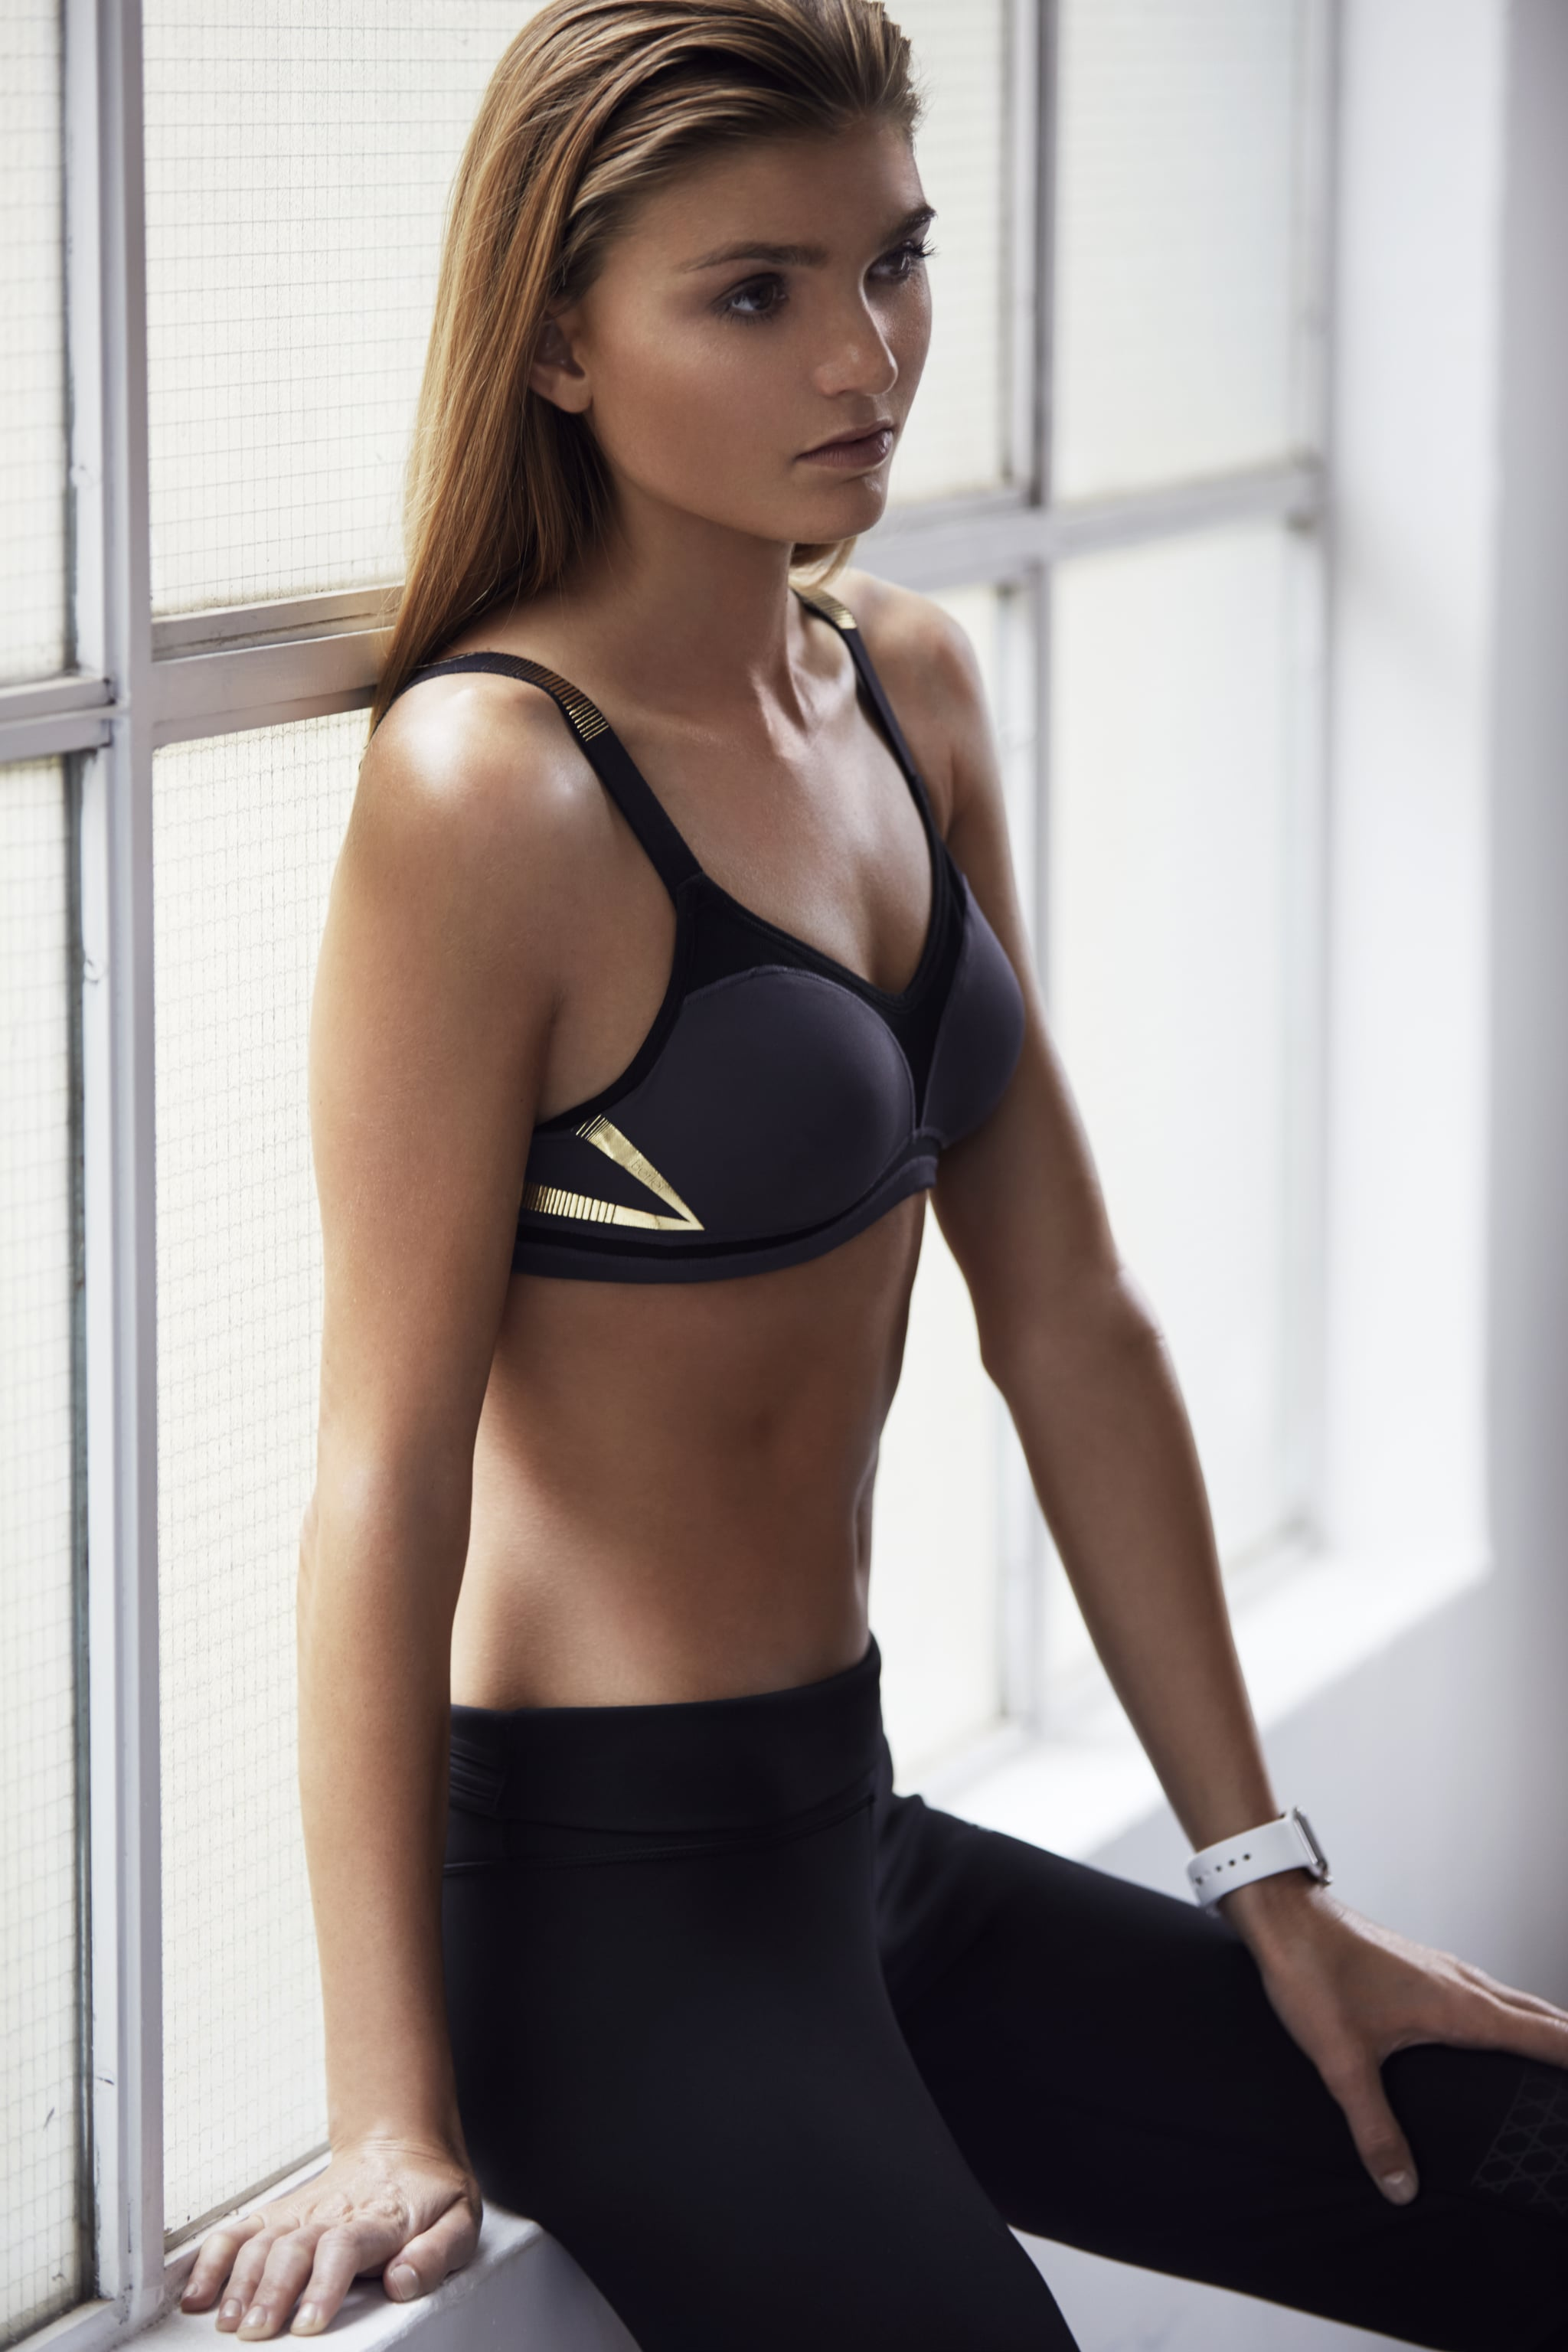 If tennis, BodyAttack or boxing is more your jam, you'll ...